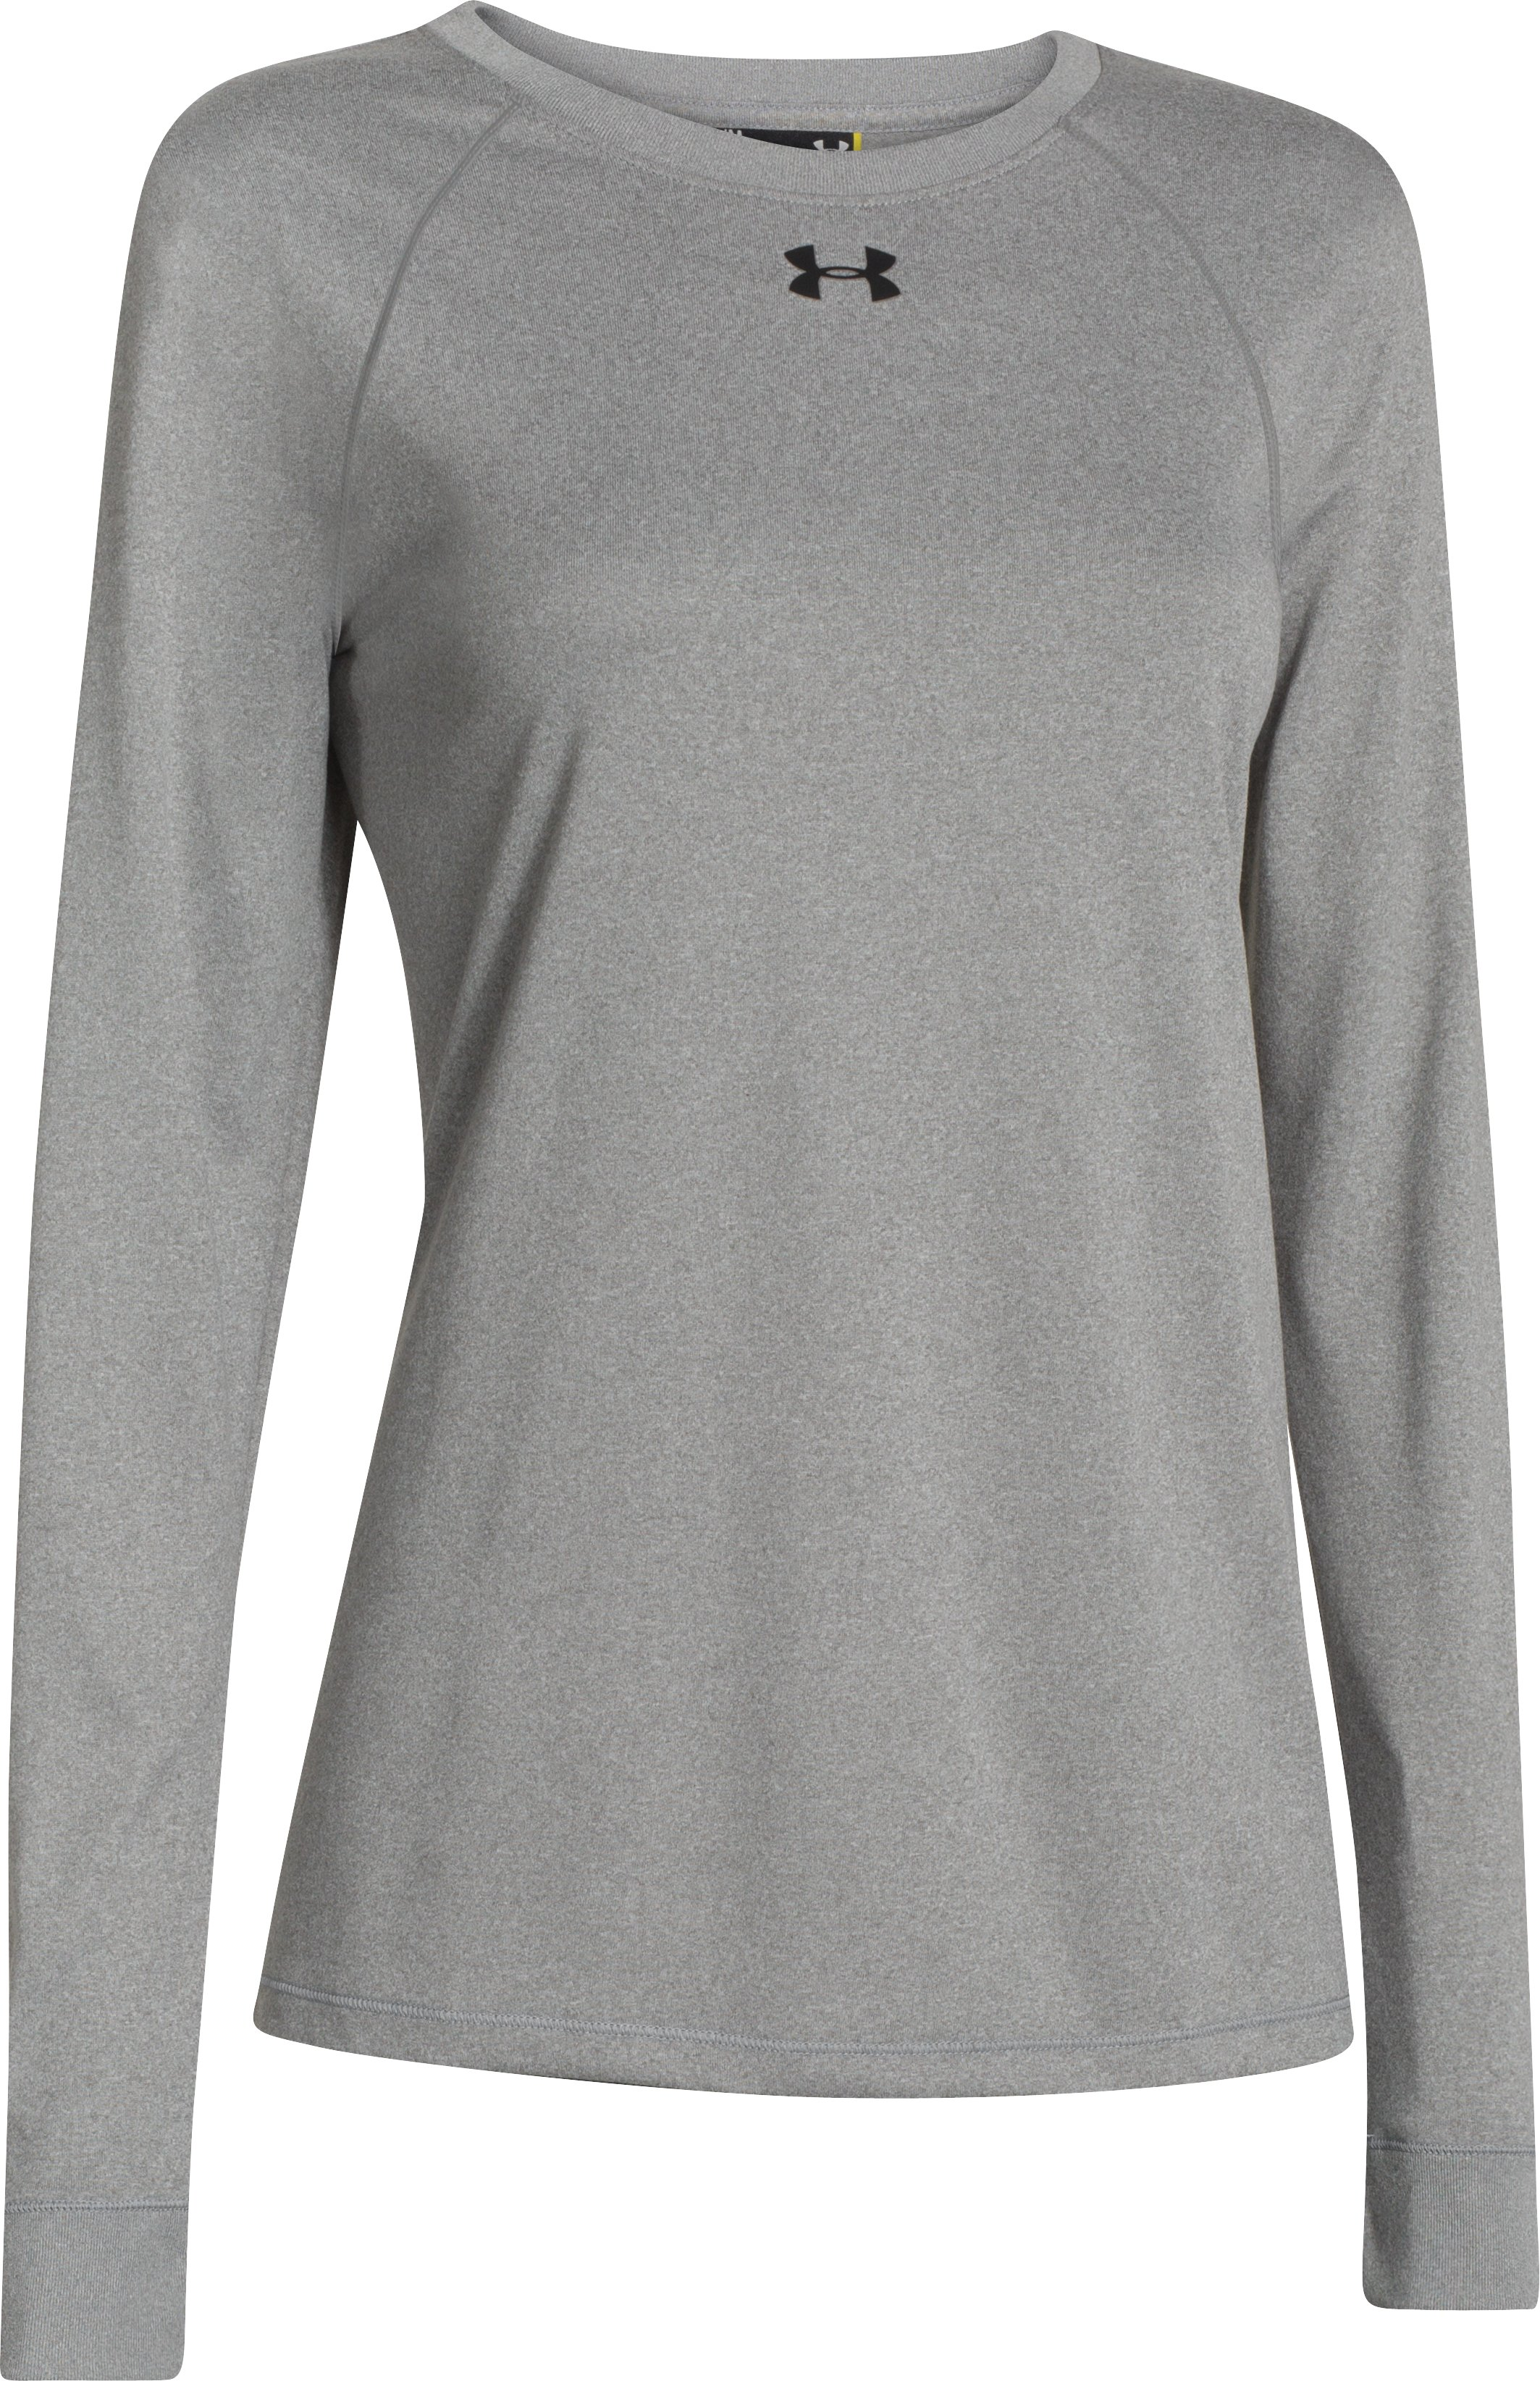 Women's Locker Long Sleeve T-Shirt, True Gray Heather